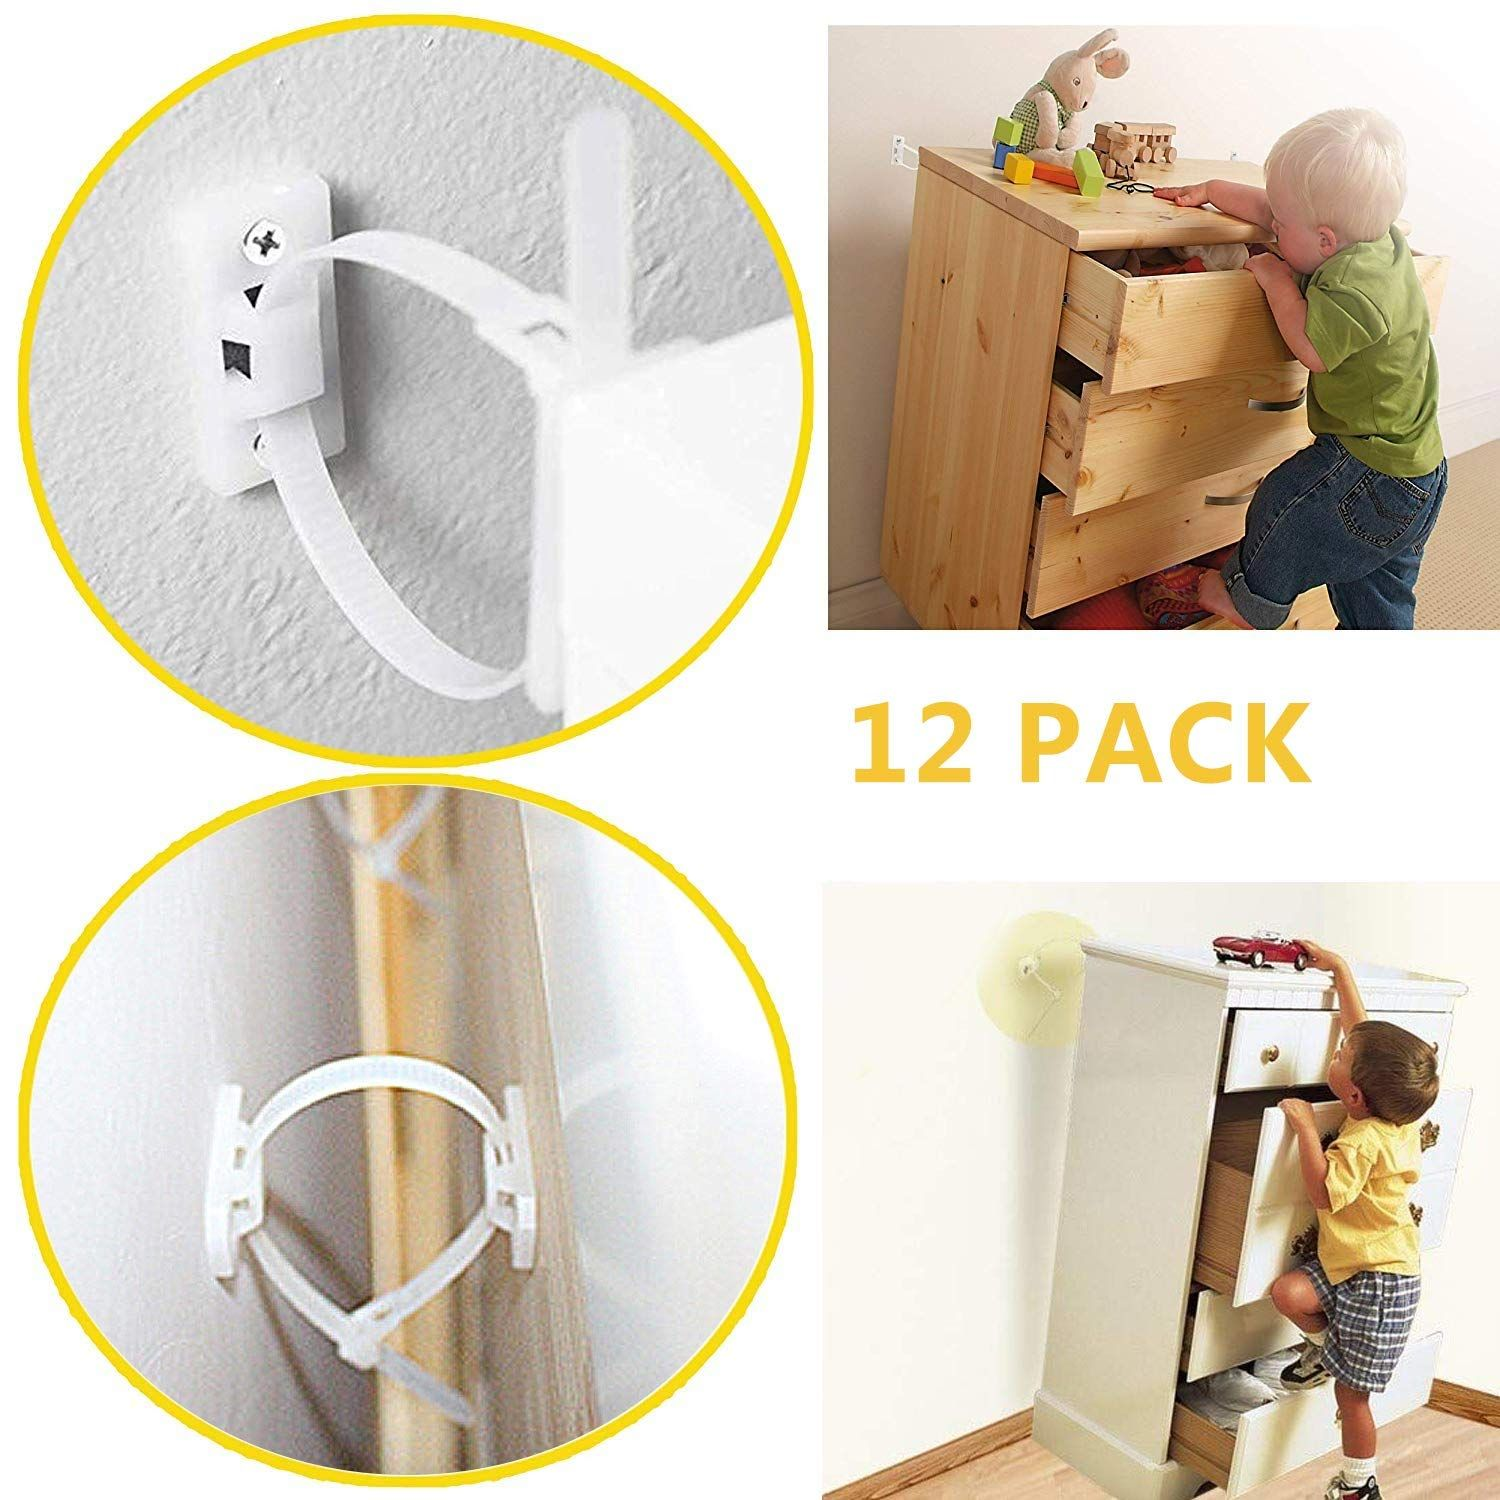 Furniture Straps Baby Proofing Anti Tip Walls 12 Pack Proofing Anti Tilt Furniture Anchors Kit Adjustable C Furniture Straps Furniture Anchors Baby Proofing